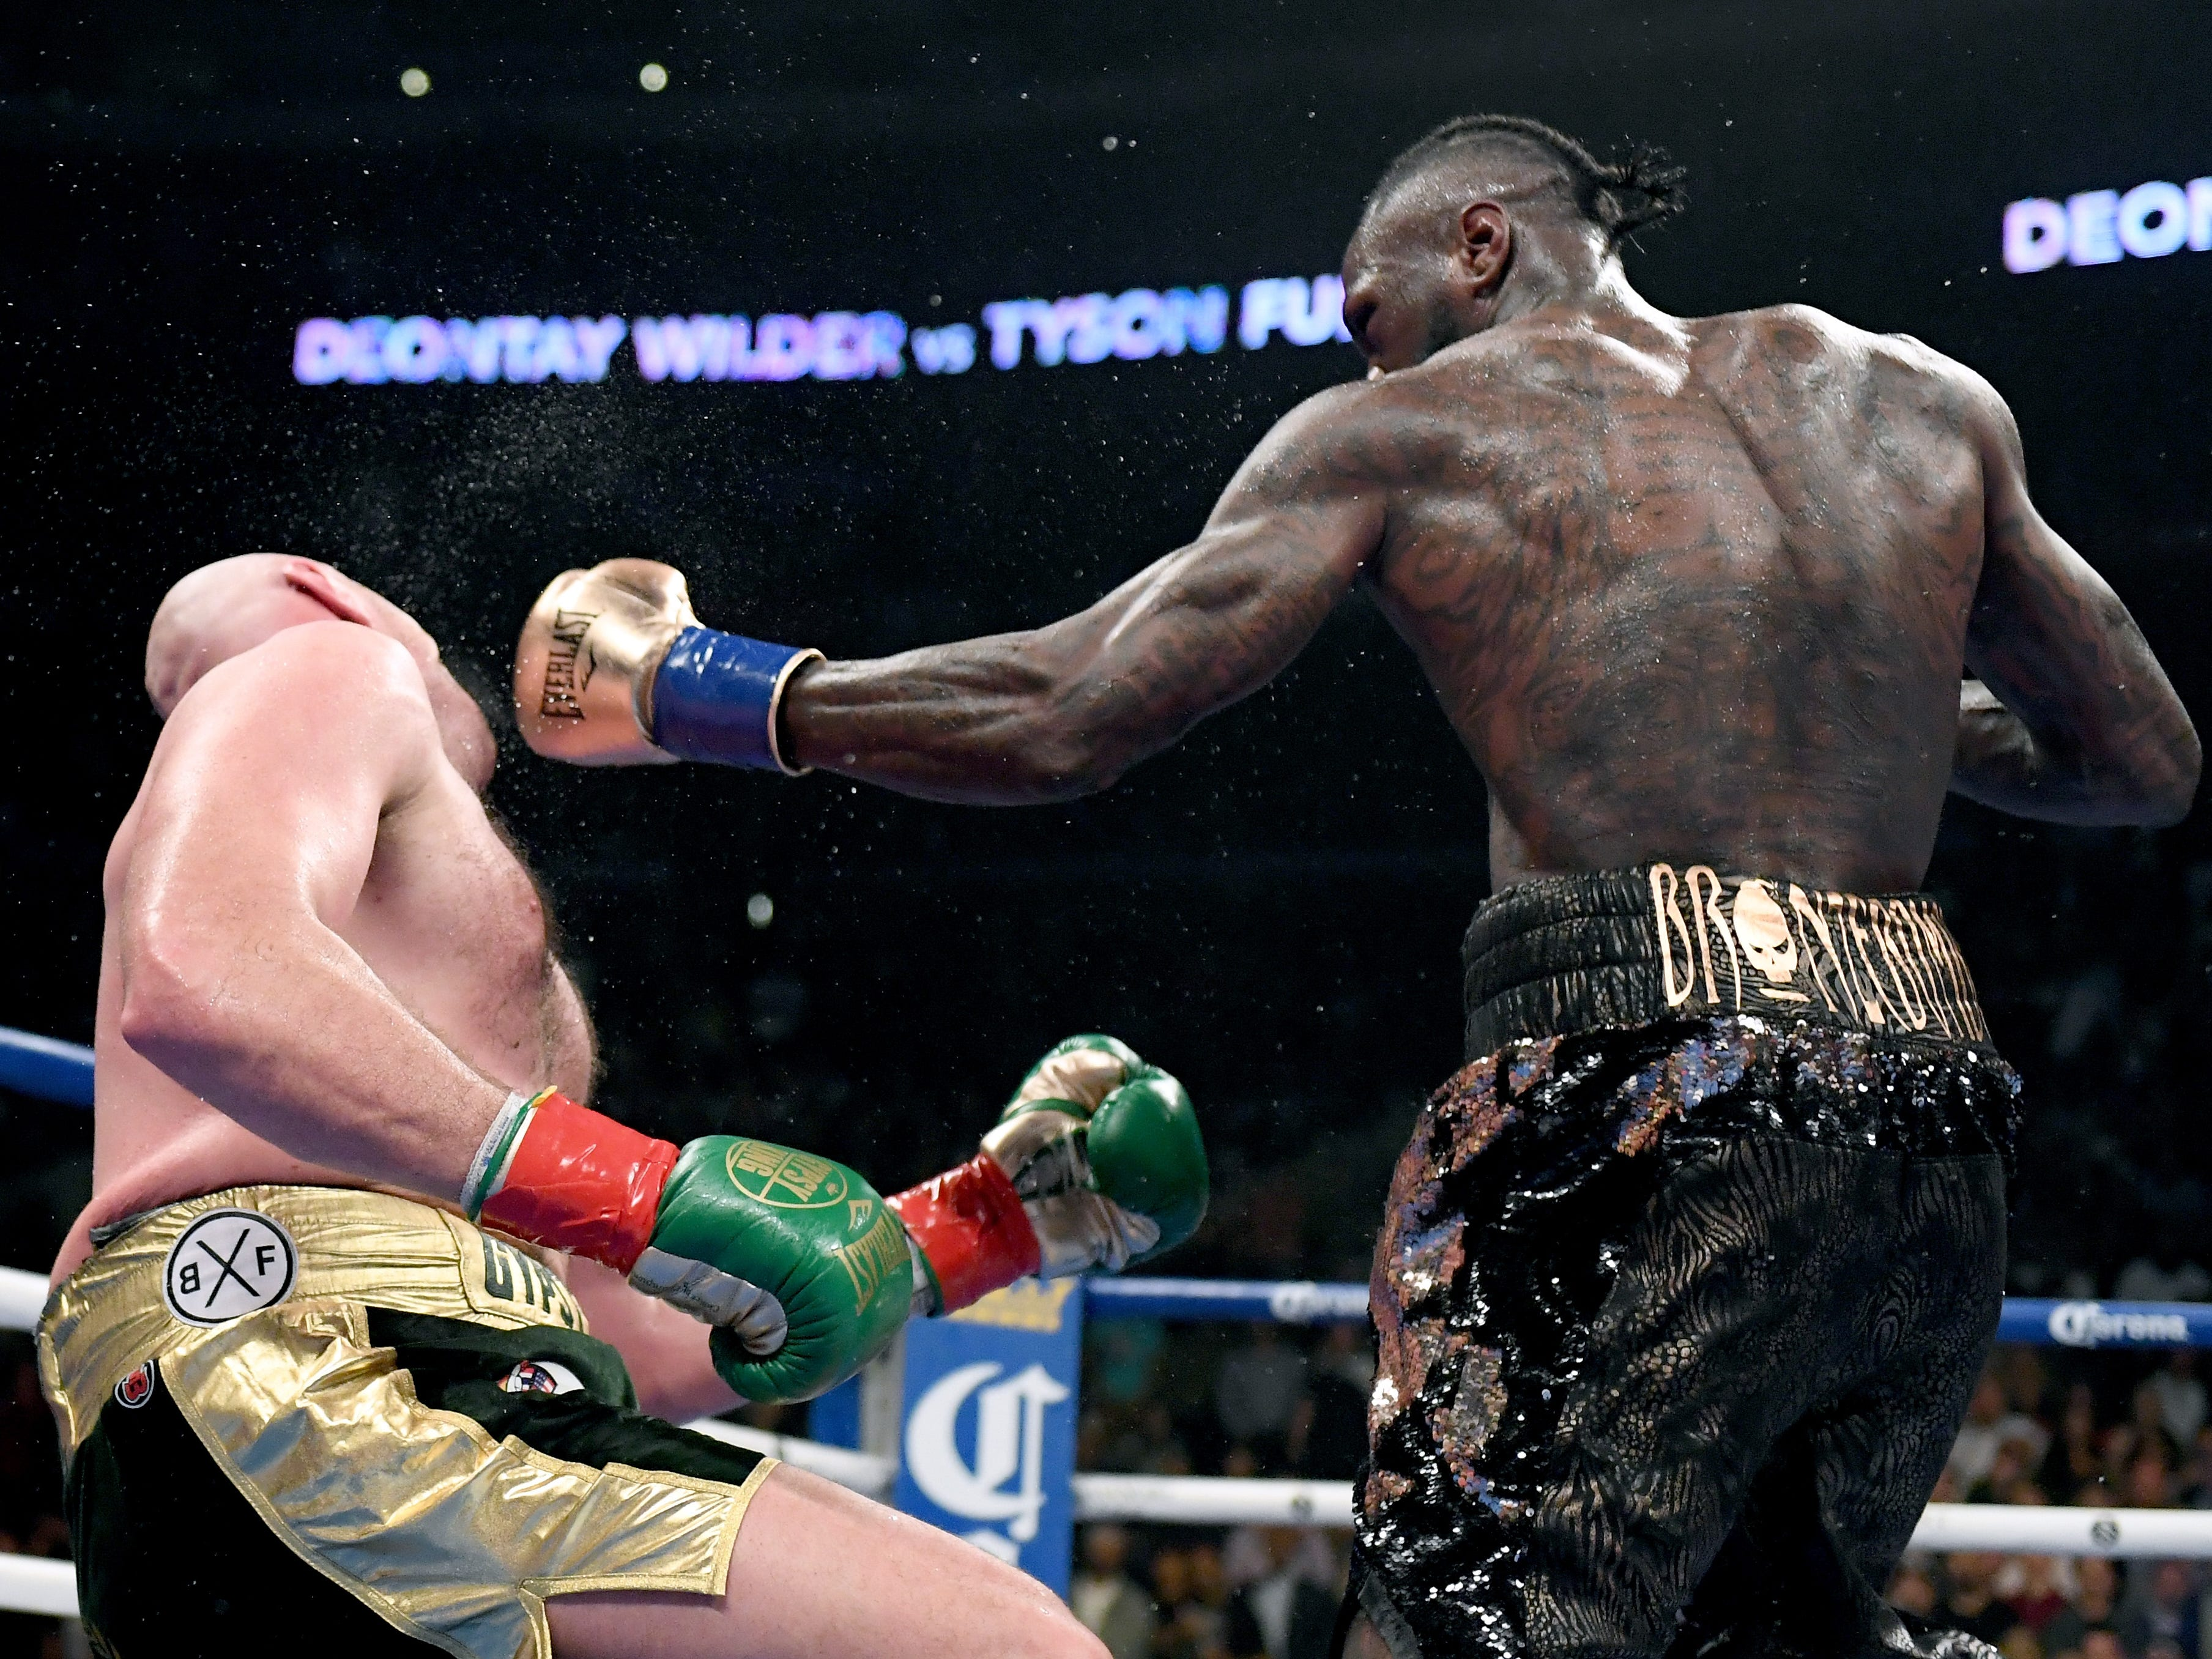 Deontay Wilder knocks Tyson Fury down with a left hand during the 12th round of their WBC heavyweight title fight Dec. 1 at Staples Center.